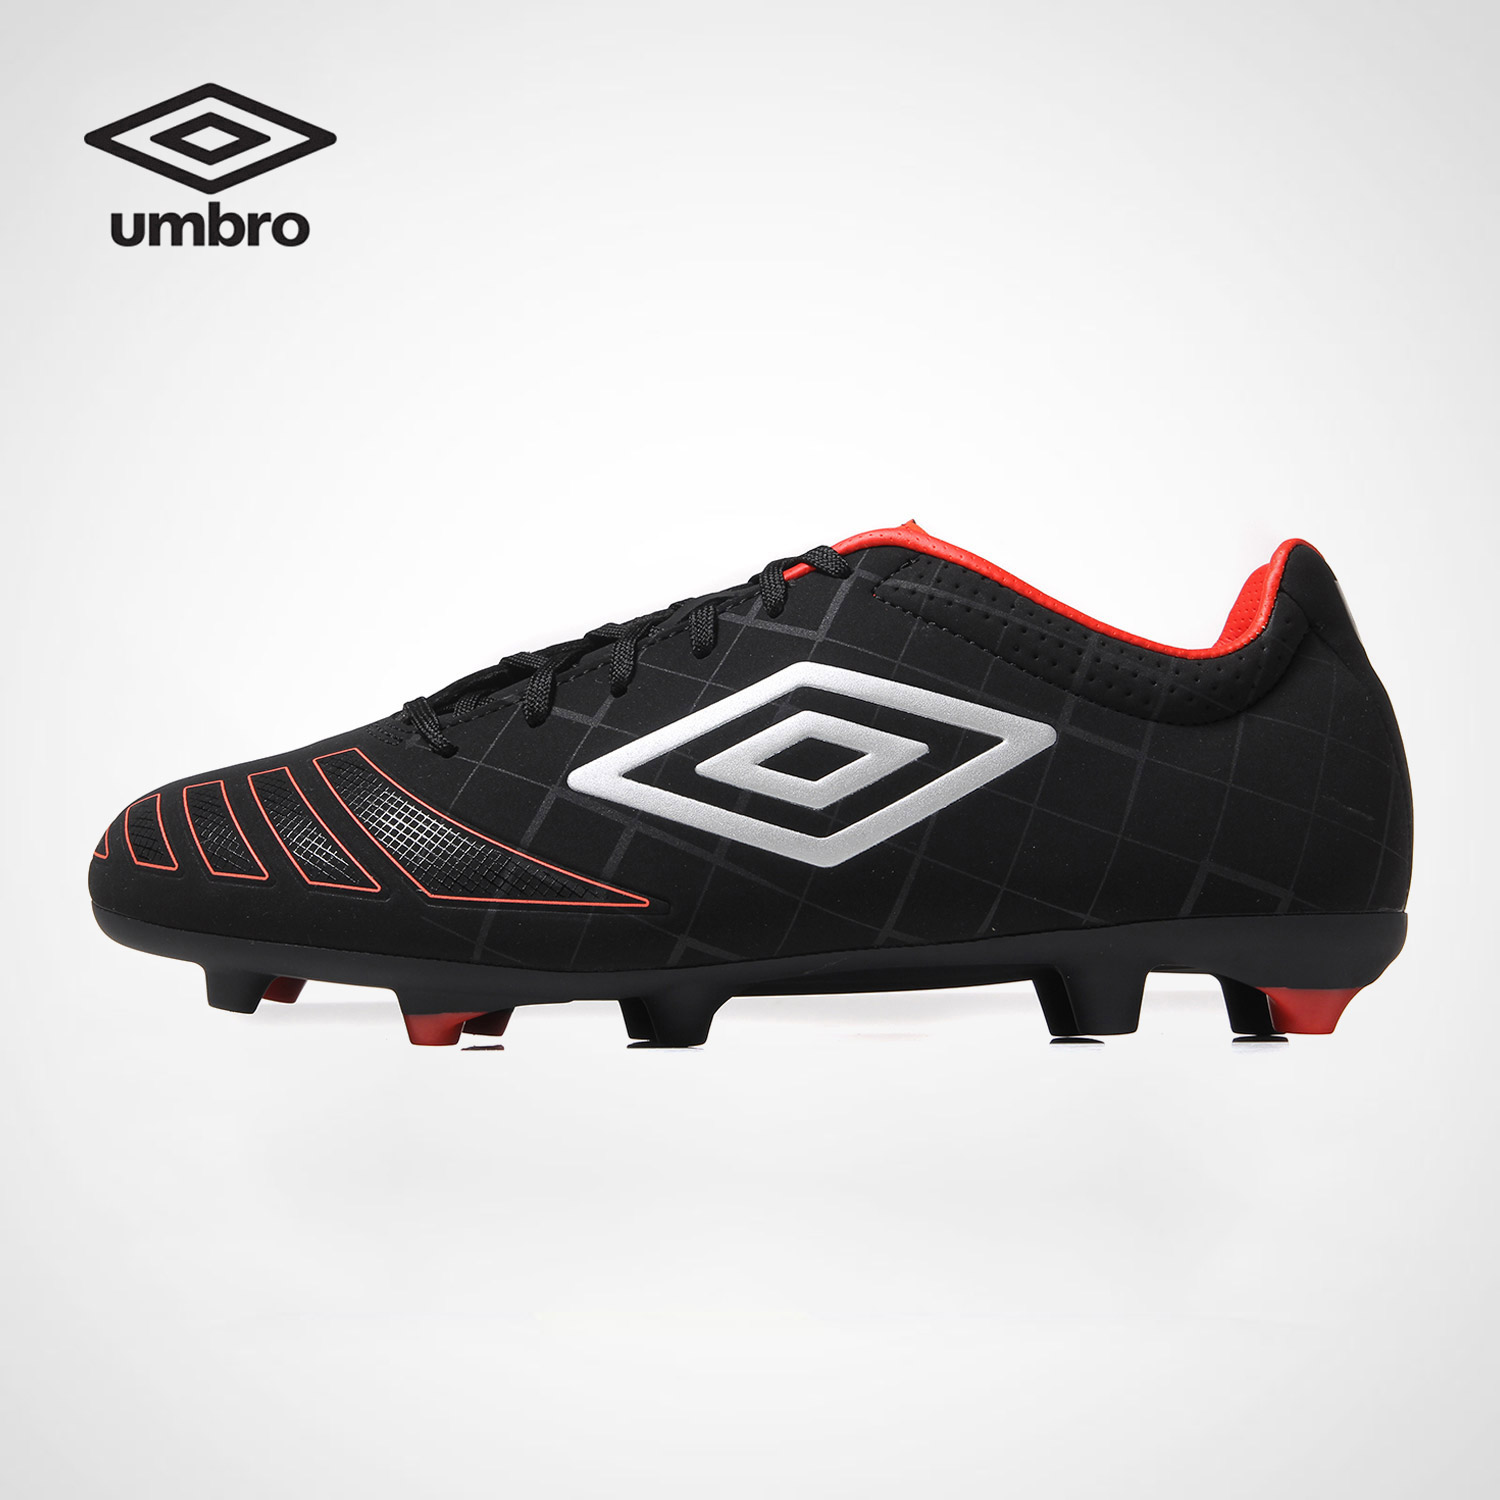 Umbro Men's Football Shoes UX Series Hard Ground HG Spikes Training Soccer Shoes Men Spike Shoes Ucb90103 umbro new men hard groud professional training sports football shoes soccer boots men spike shoes ucb90137